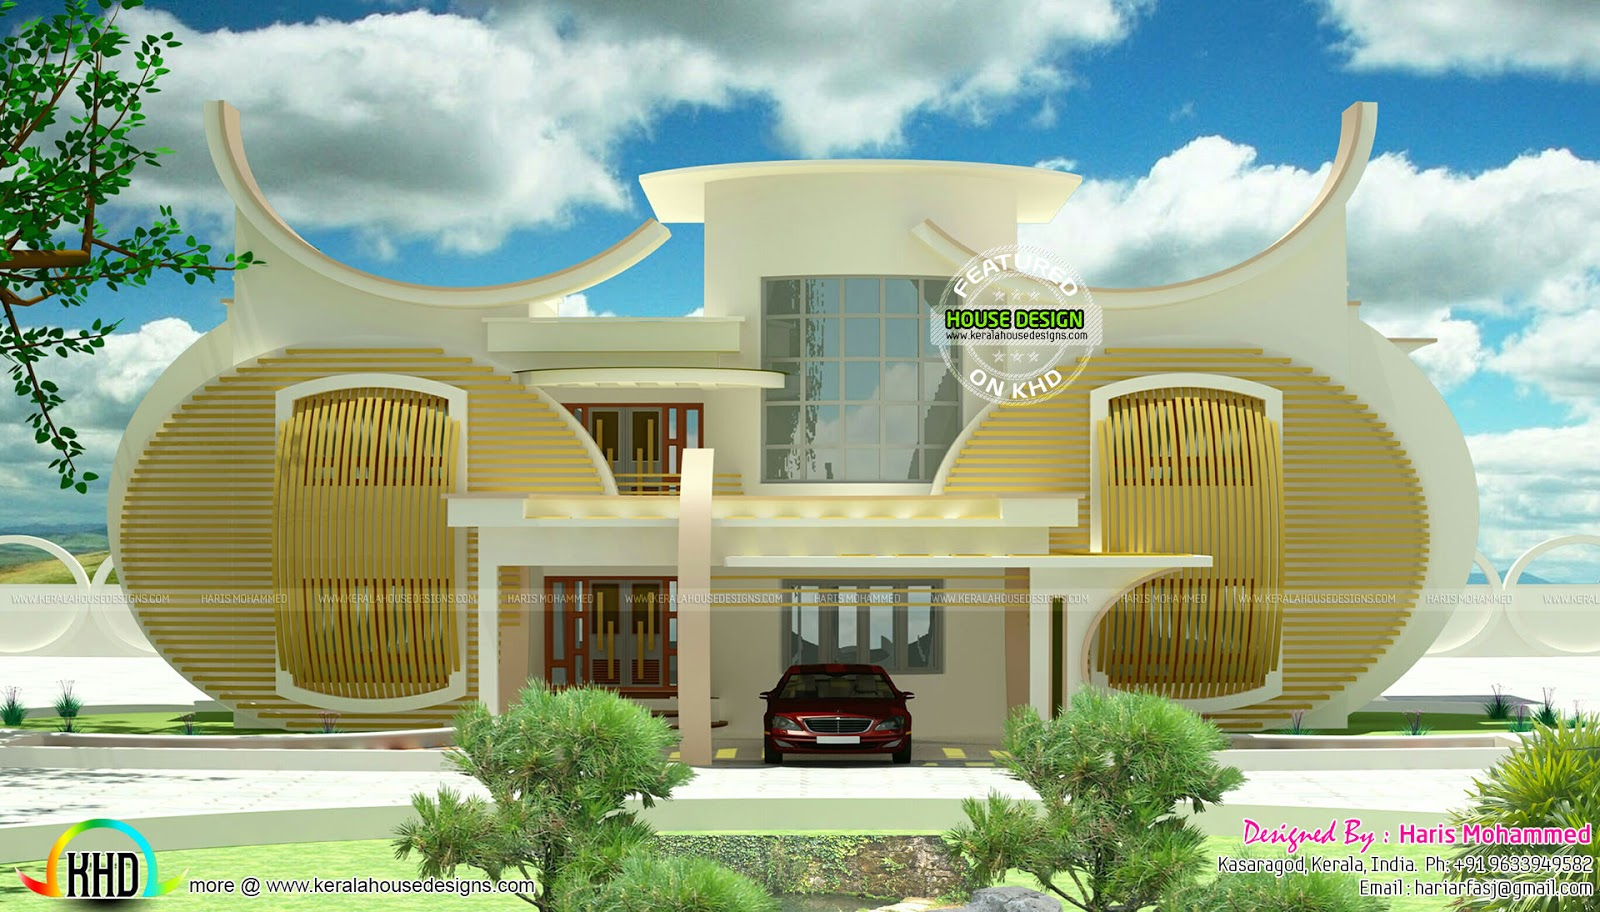 Strange circular home design kerala home design and for House design pic